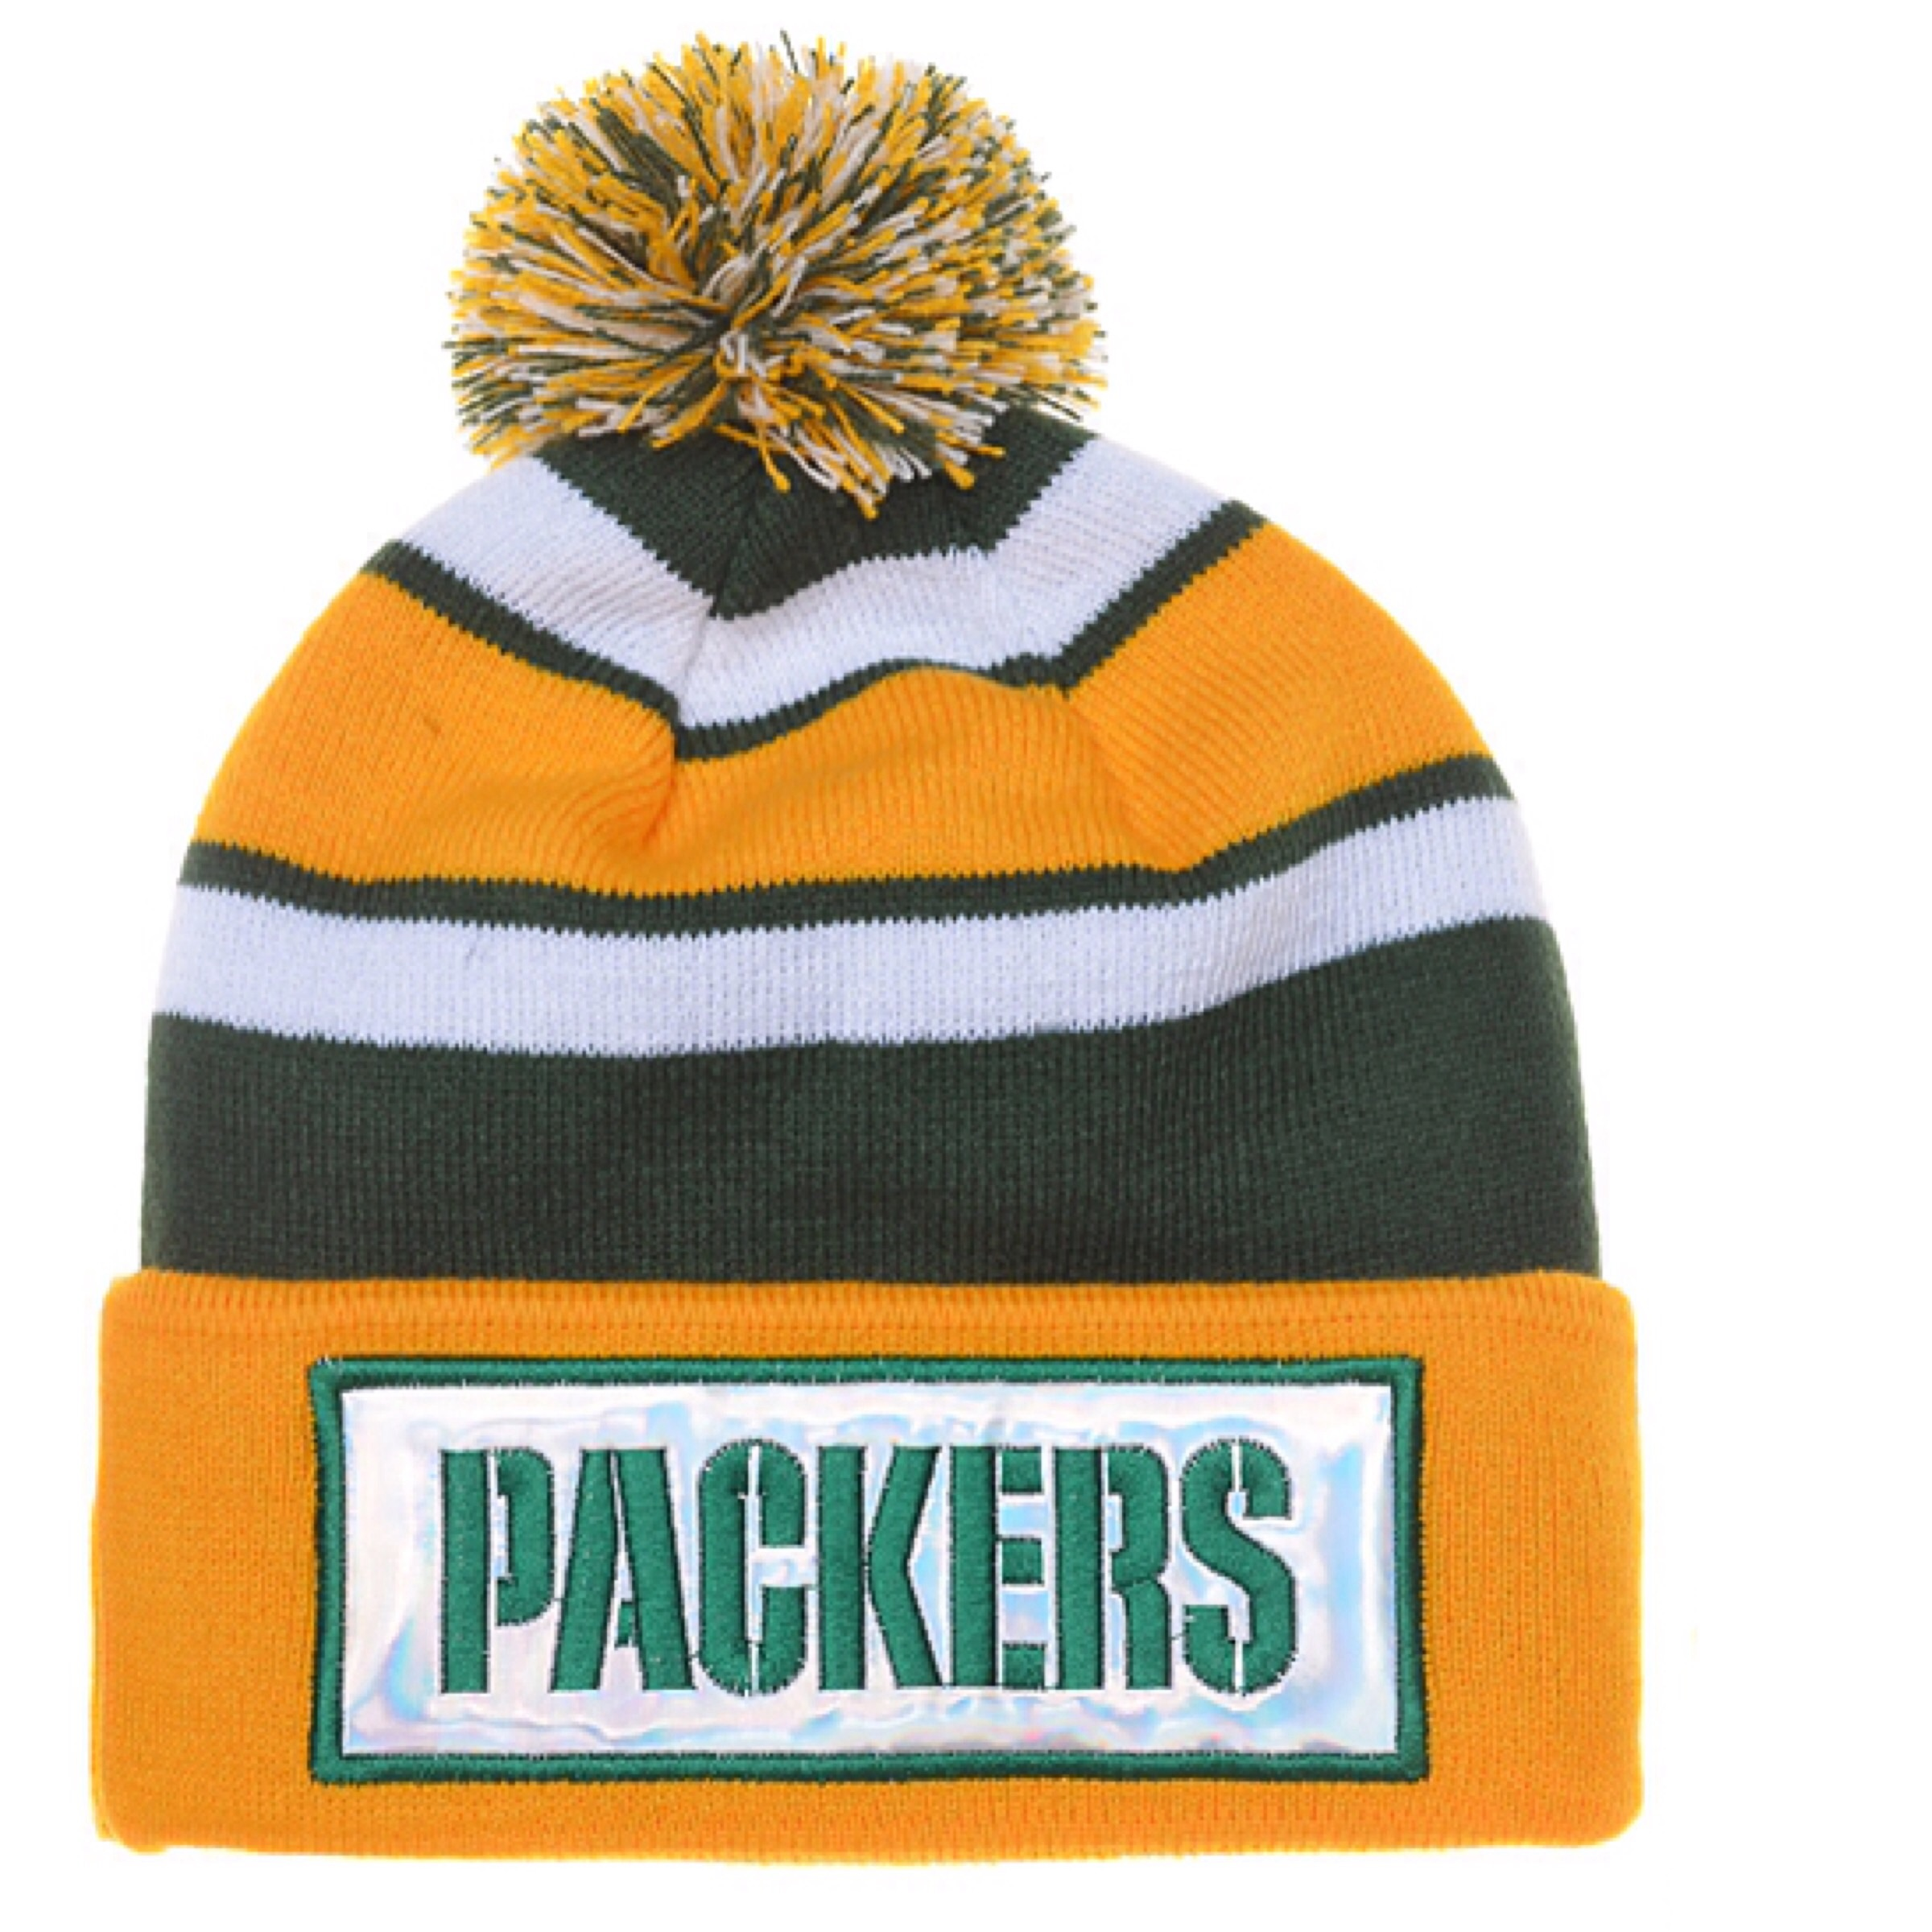 b5805573d4d Customer feedback for this store 0 past orders · 0 customer ratings.  Details  Shipping   FAQs. NFL Green Bay Packers